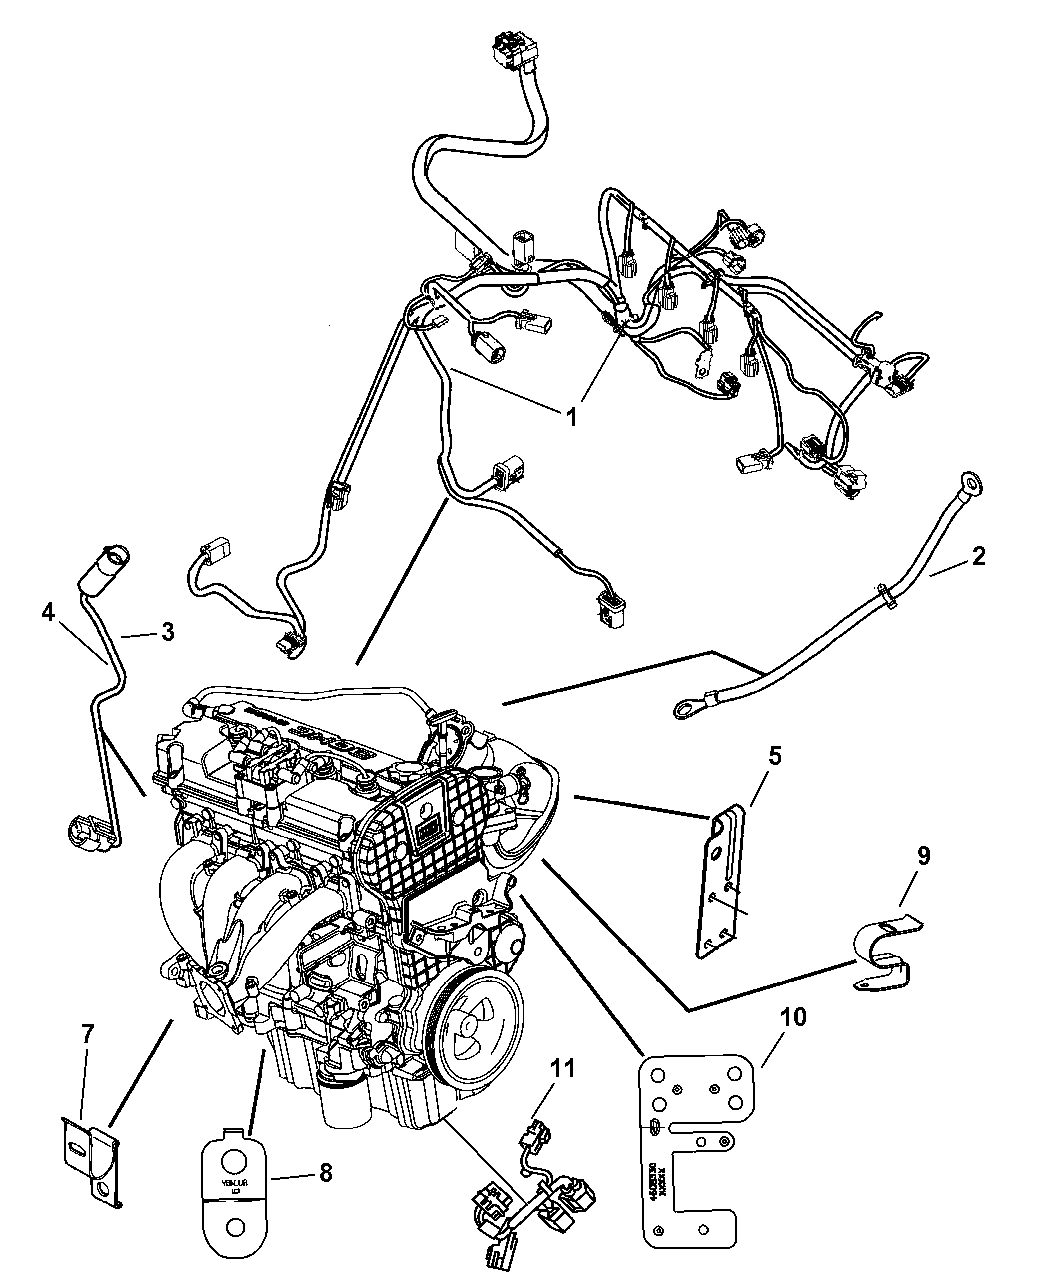 5087158AE - Genuine Mopar WIRING-ENGINE